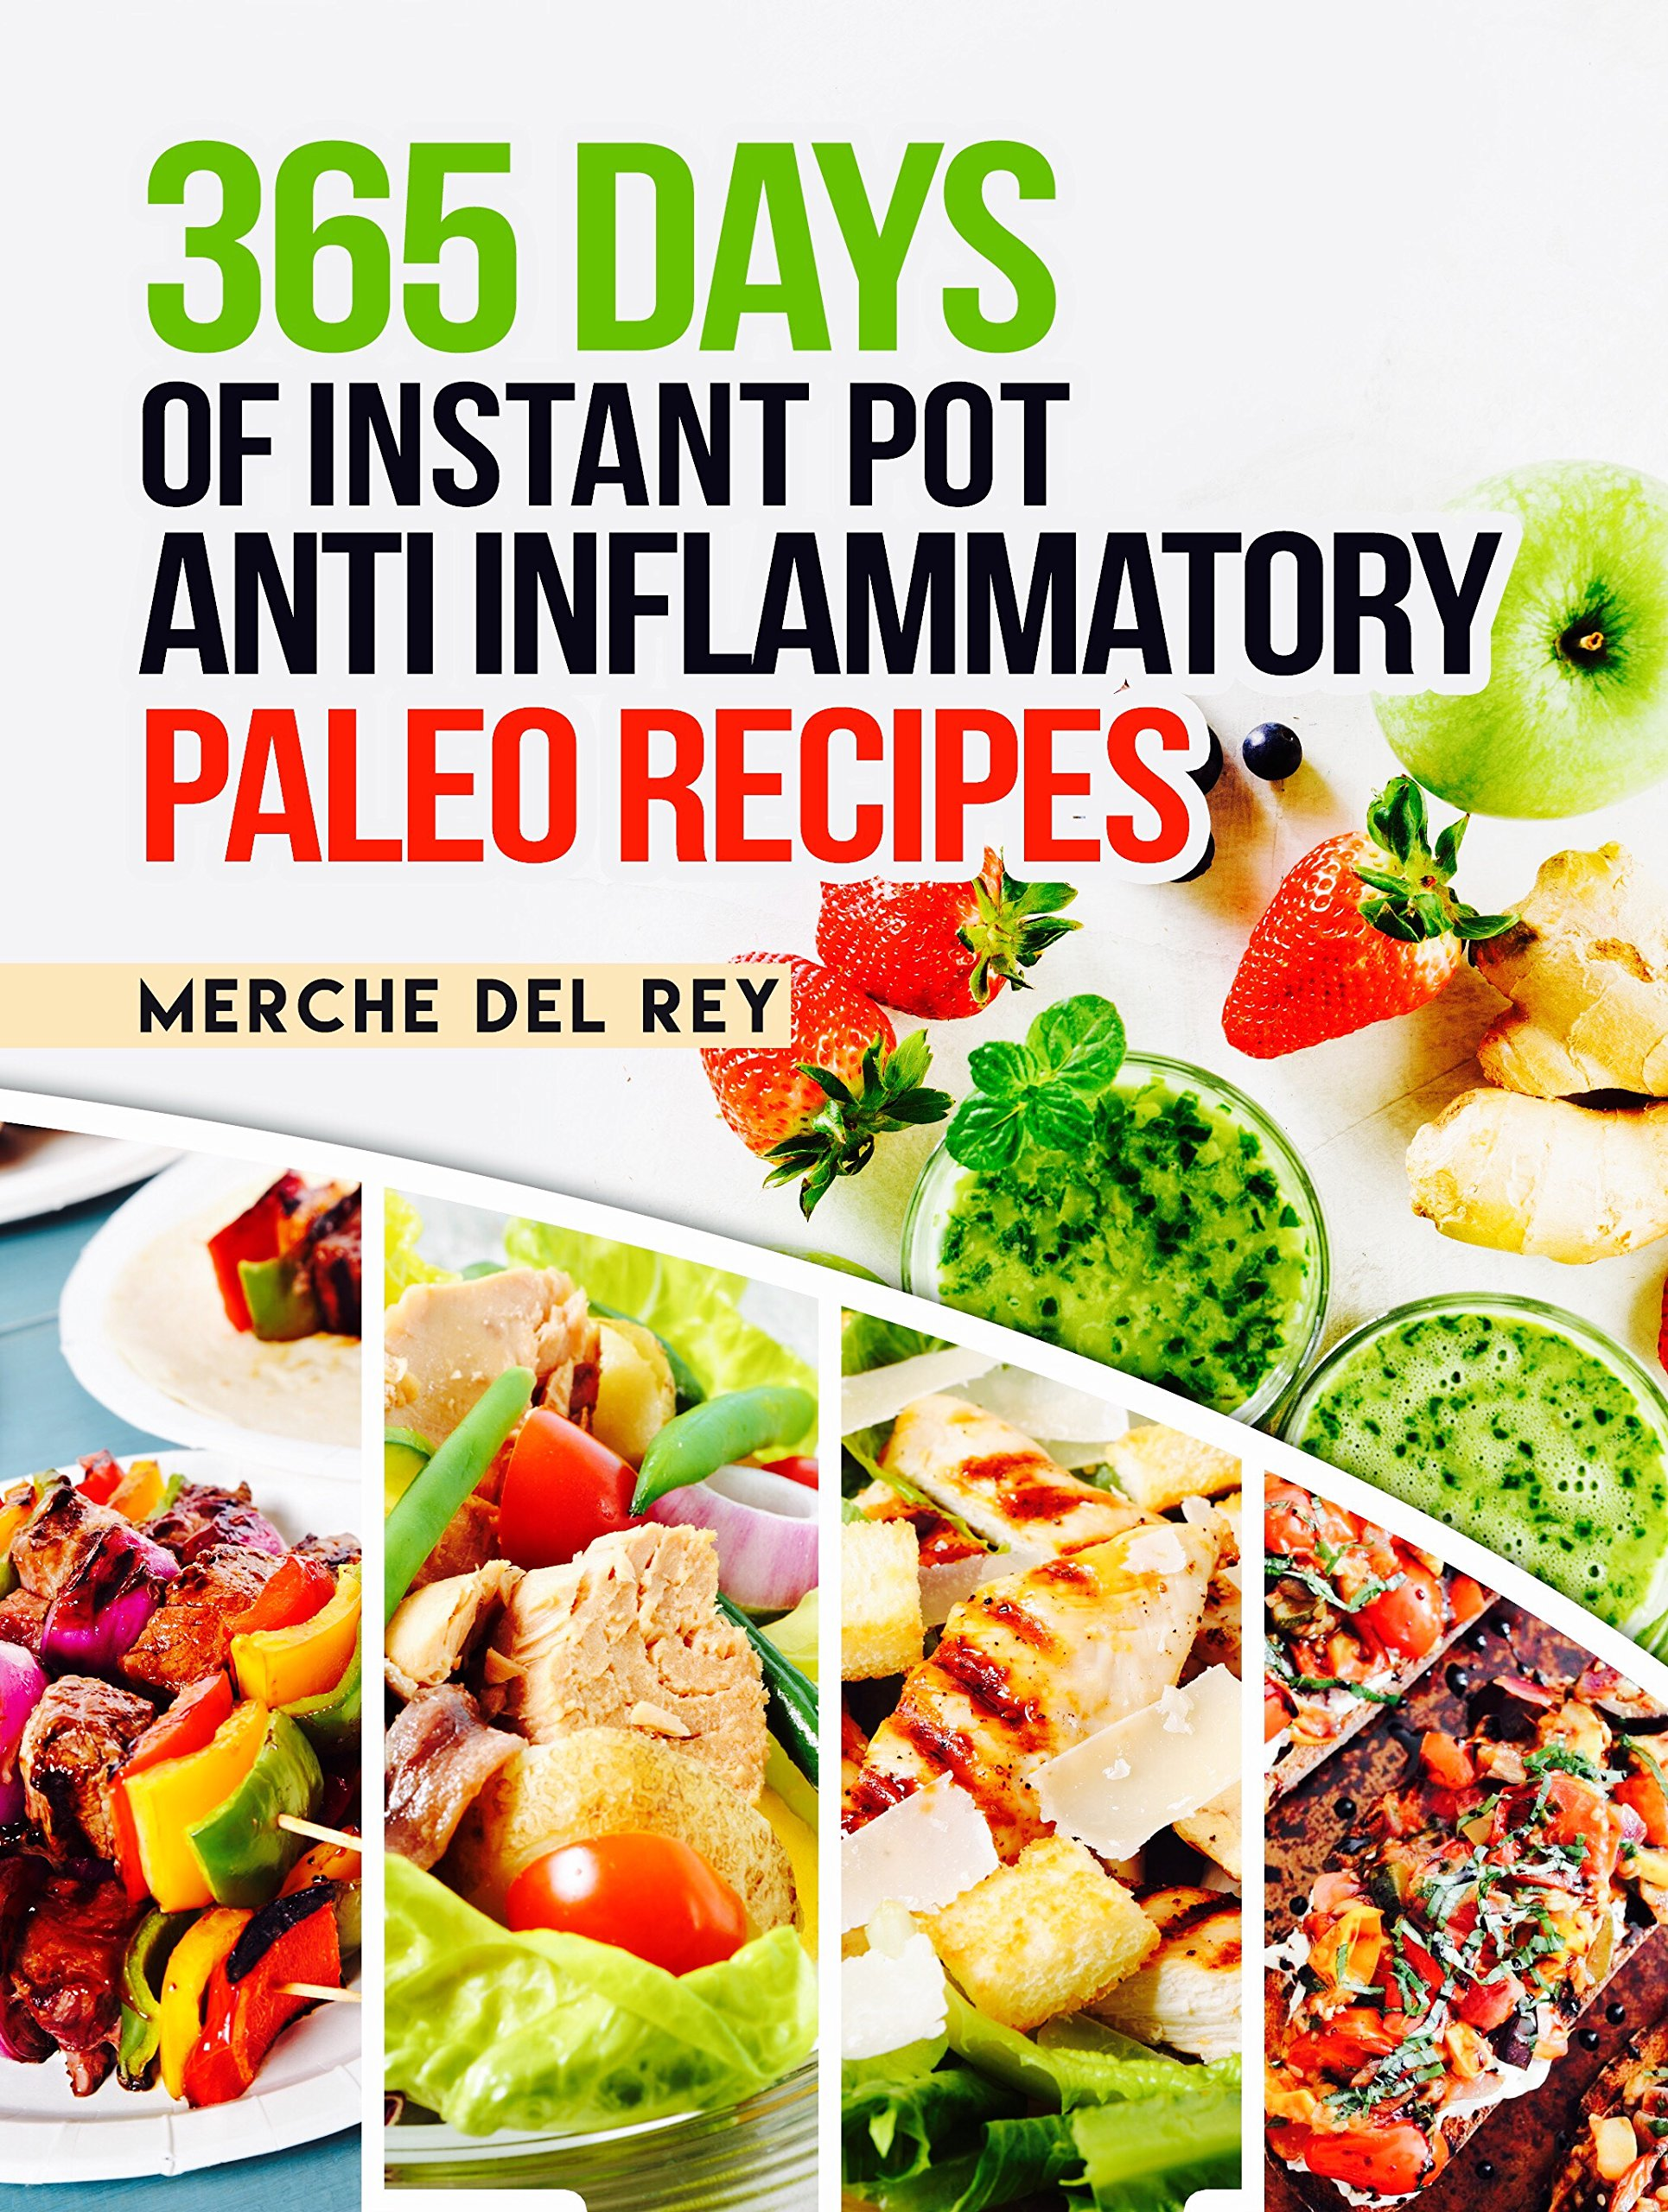 Paleo Instant Pot: 365 Days of Instant Pot Anti Inflammatory Paleo Recipes: Paleo Diet for Beginners, Paleo Diet Cookbook, Crock Pot, Slow Cooker, Easy Recipes for Fast & Healthy Meals